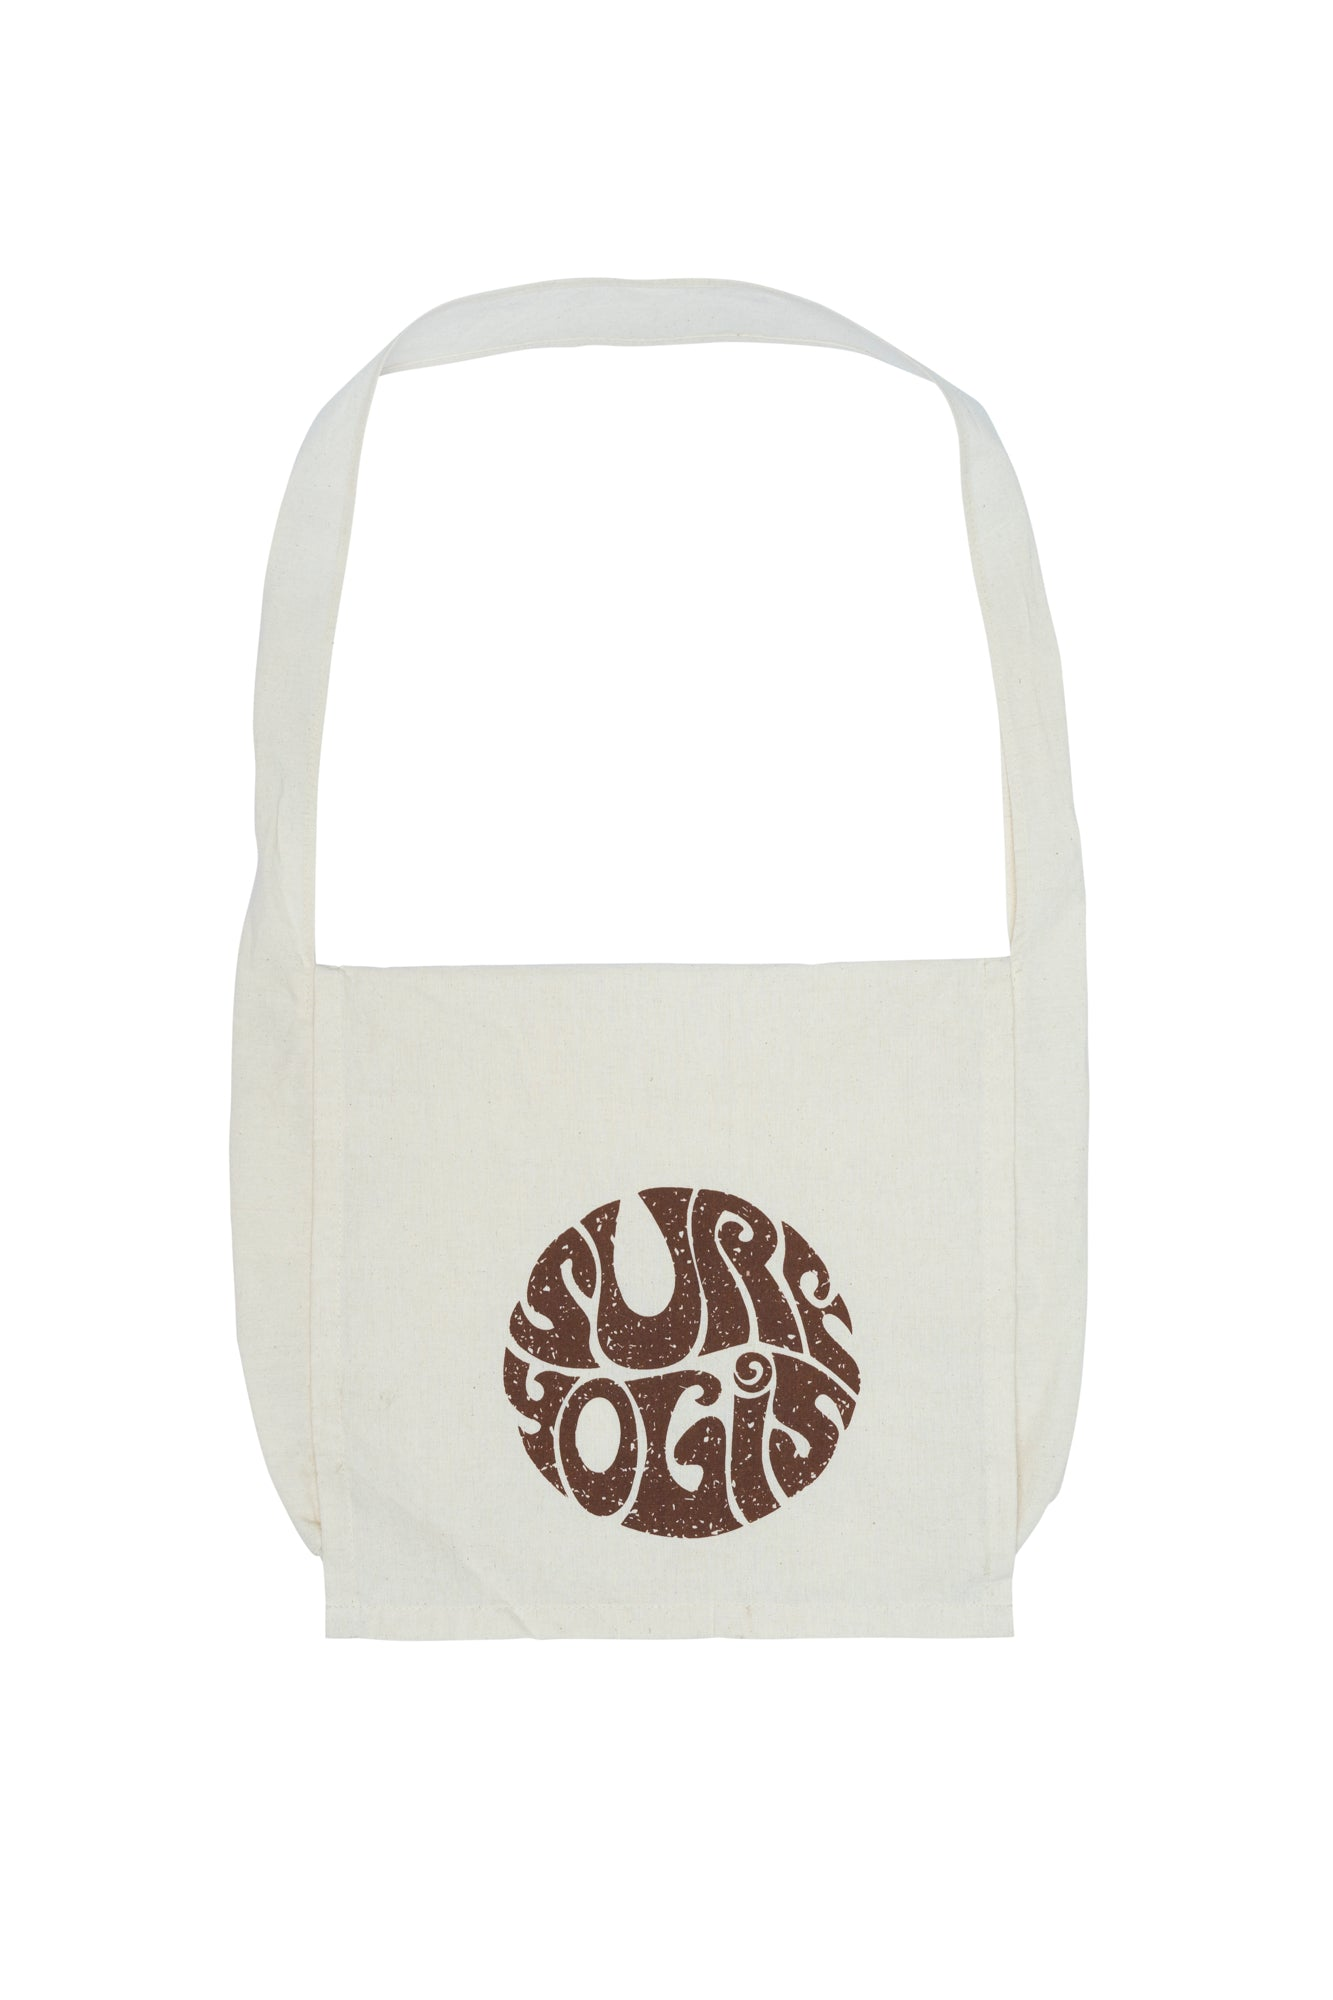 Off white, calico bag with flap. Vintage surfyogis logo, brown print.